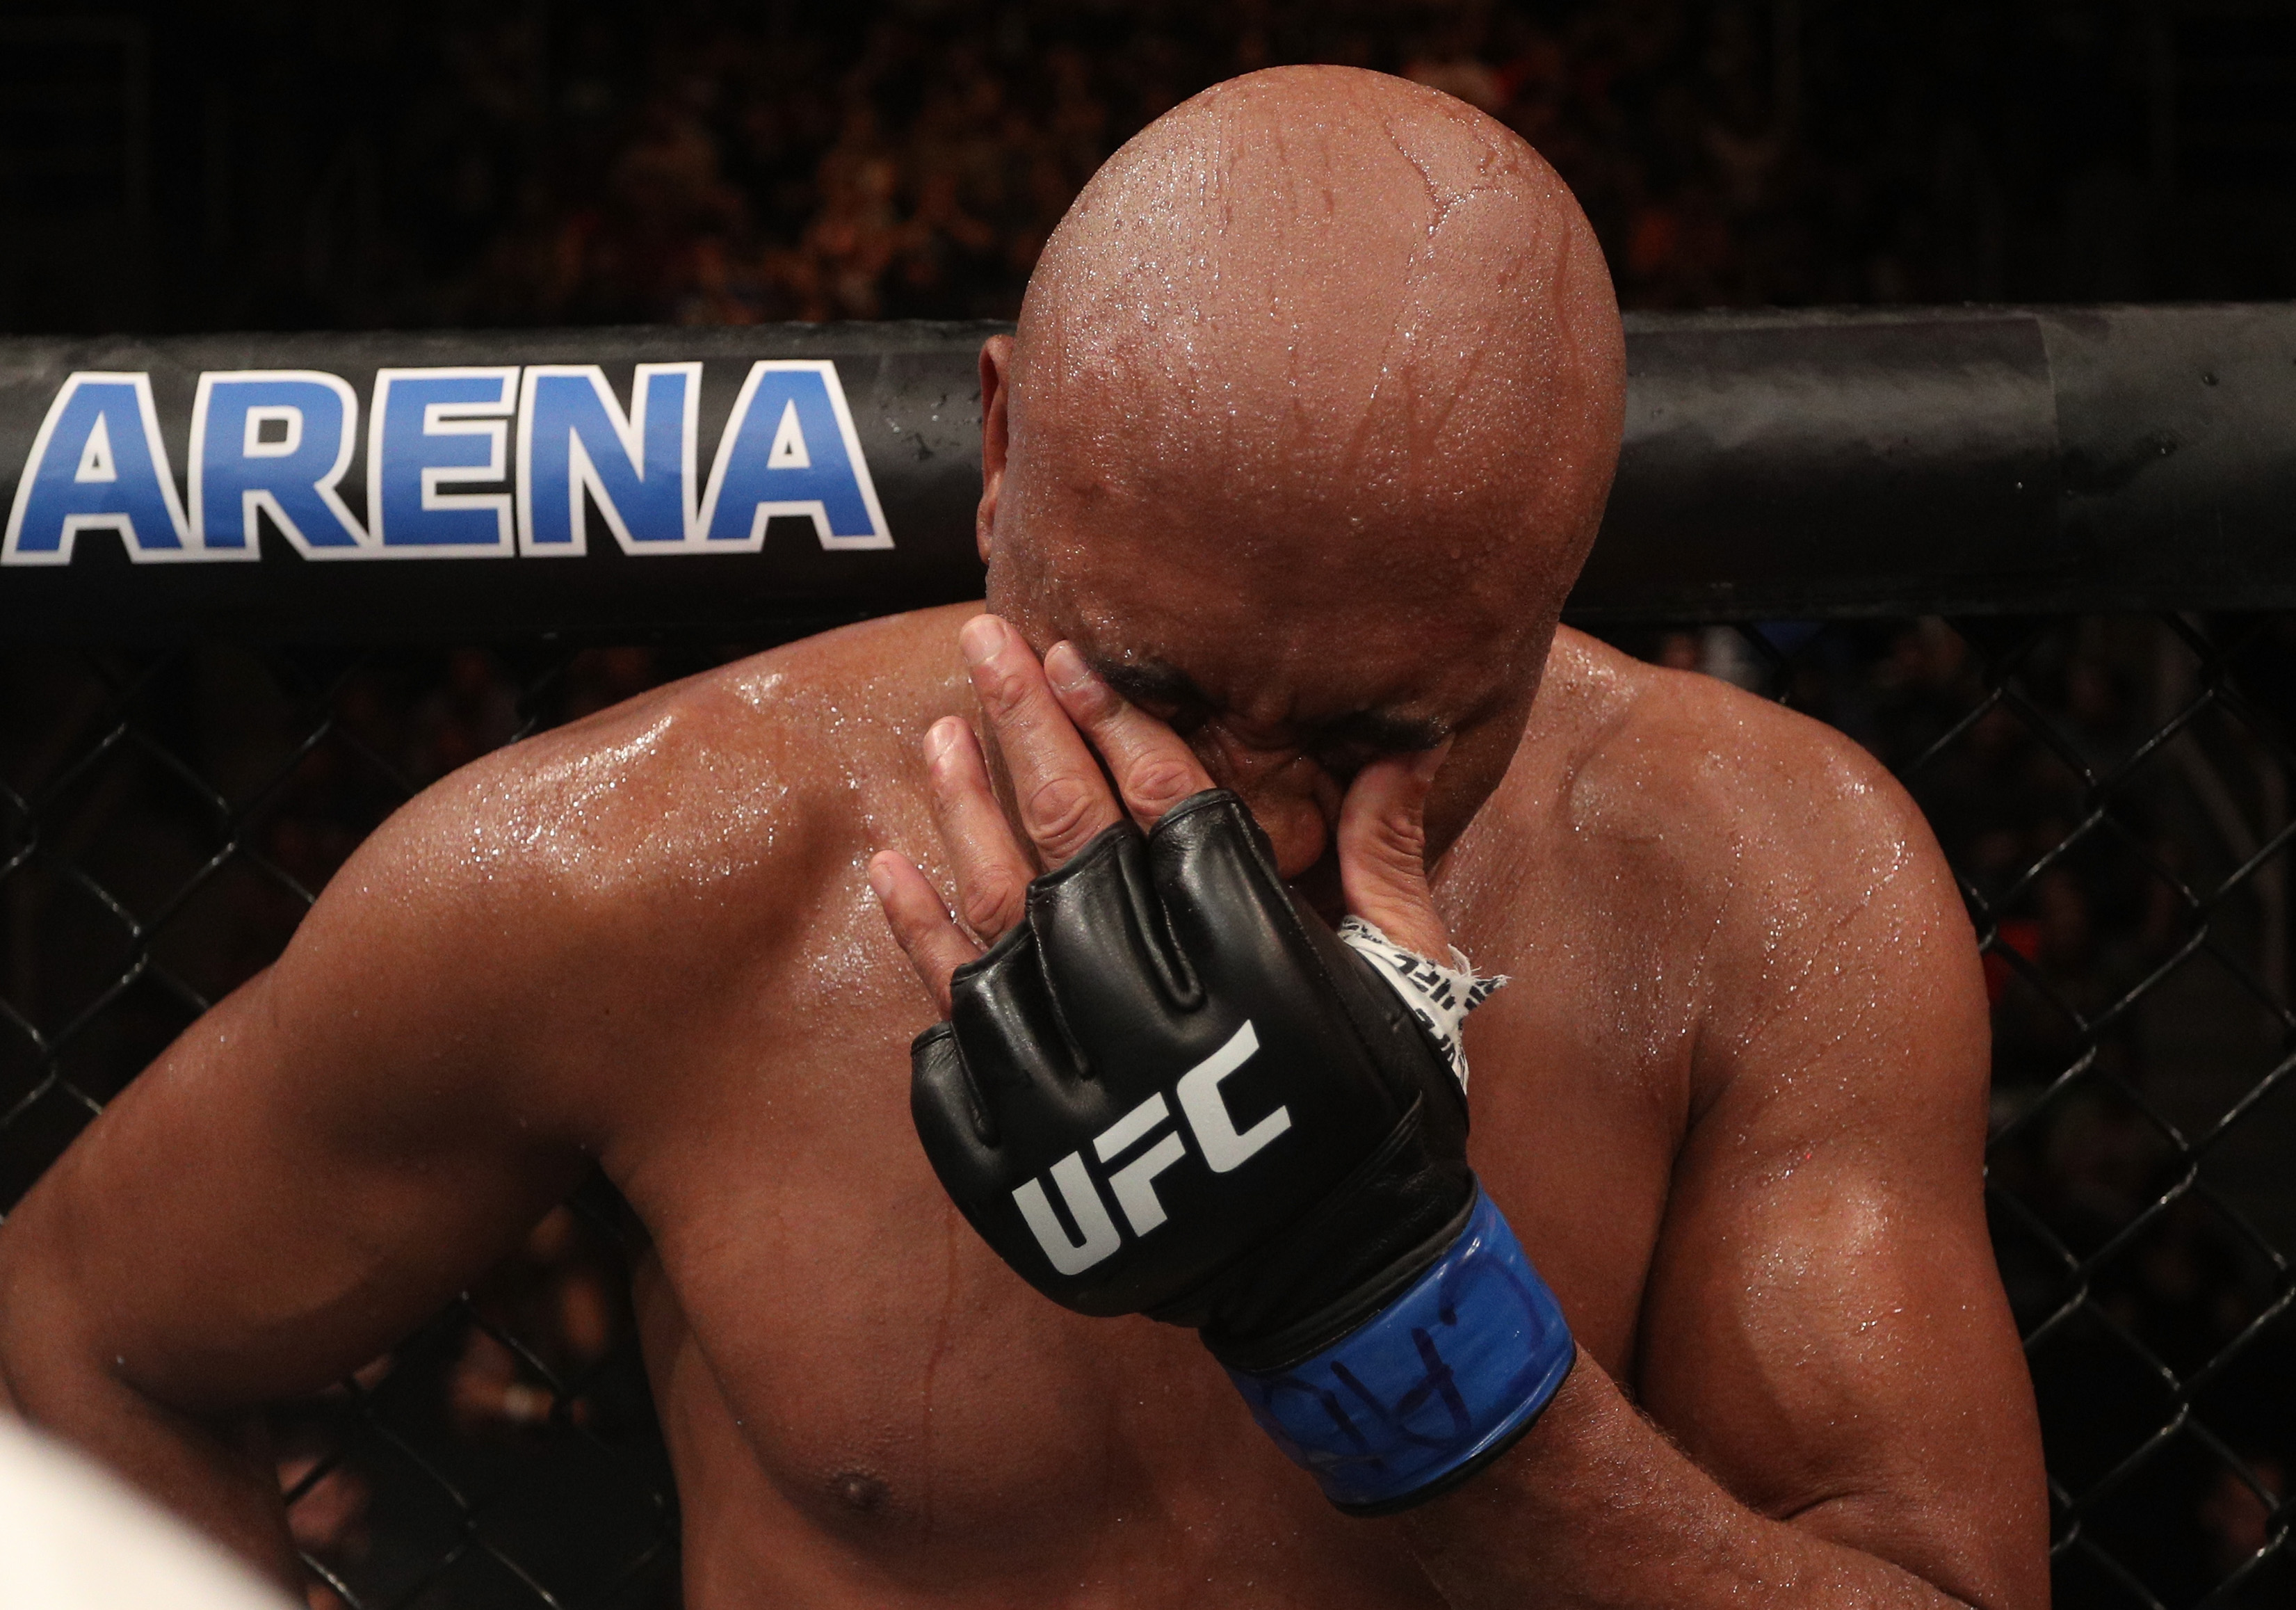 UFC great Anderson Silva opened up as a betting underdog to YouTuber turned boxer Logan Paul